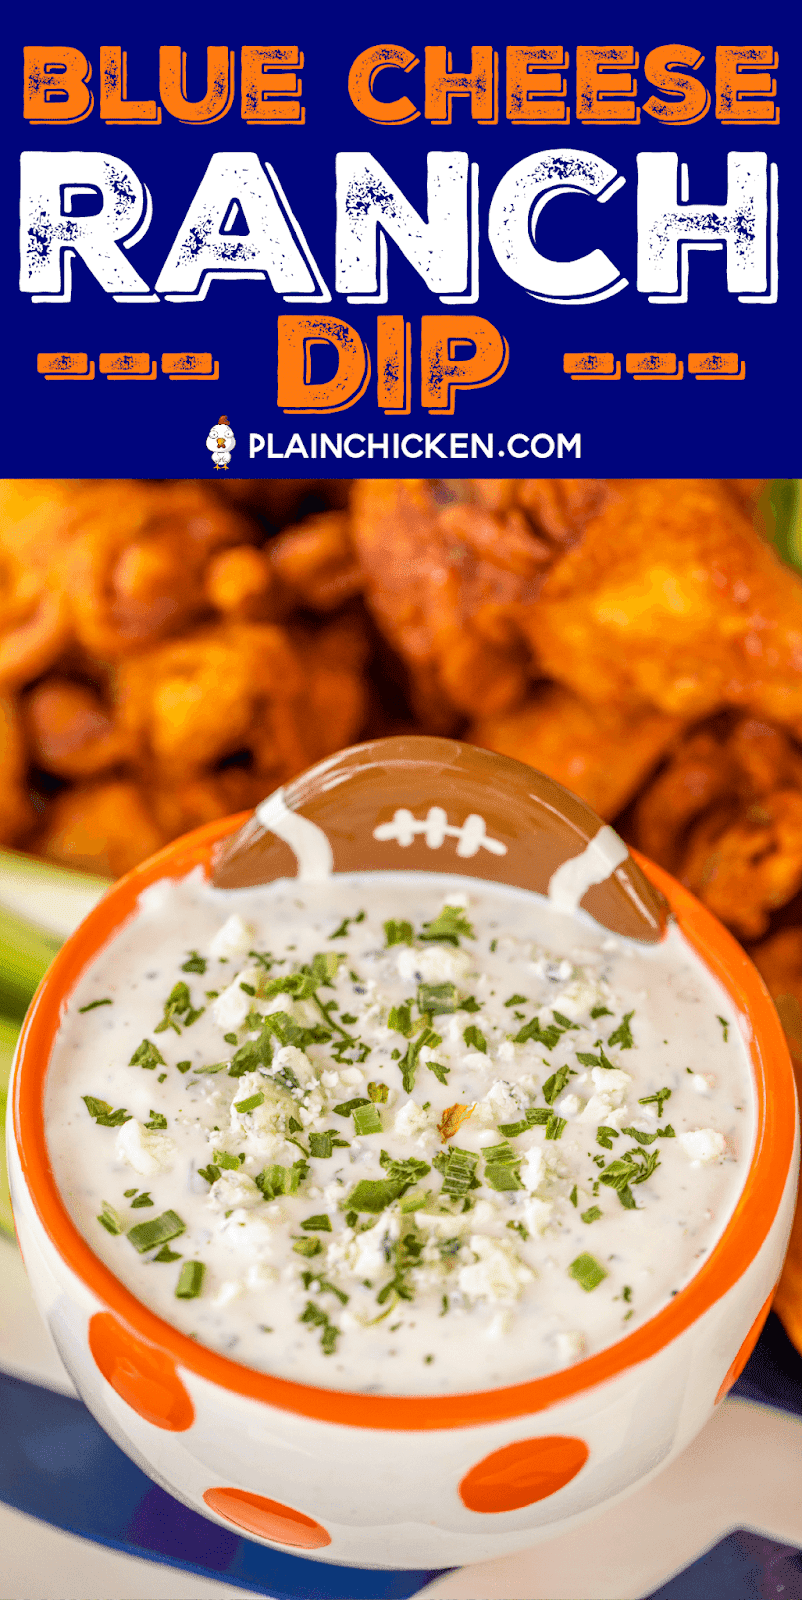 Blue Cheese Ranch Dip - the best of both worlds!! So simple and it tastes 1000 times better than the bottled stuff! Hellmann's/Best Foods Mayonnaise, buttermilk, pepper, chives, parsley, dill weed, garlic, onion, salt and blue cheese. Perfect accompaniment to your game day wings!